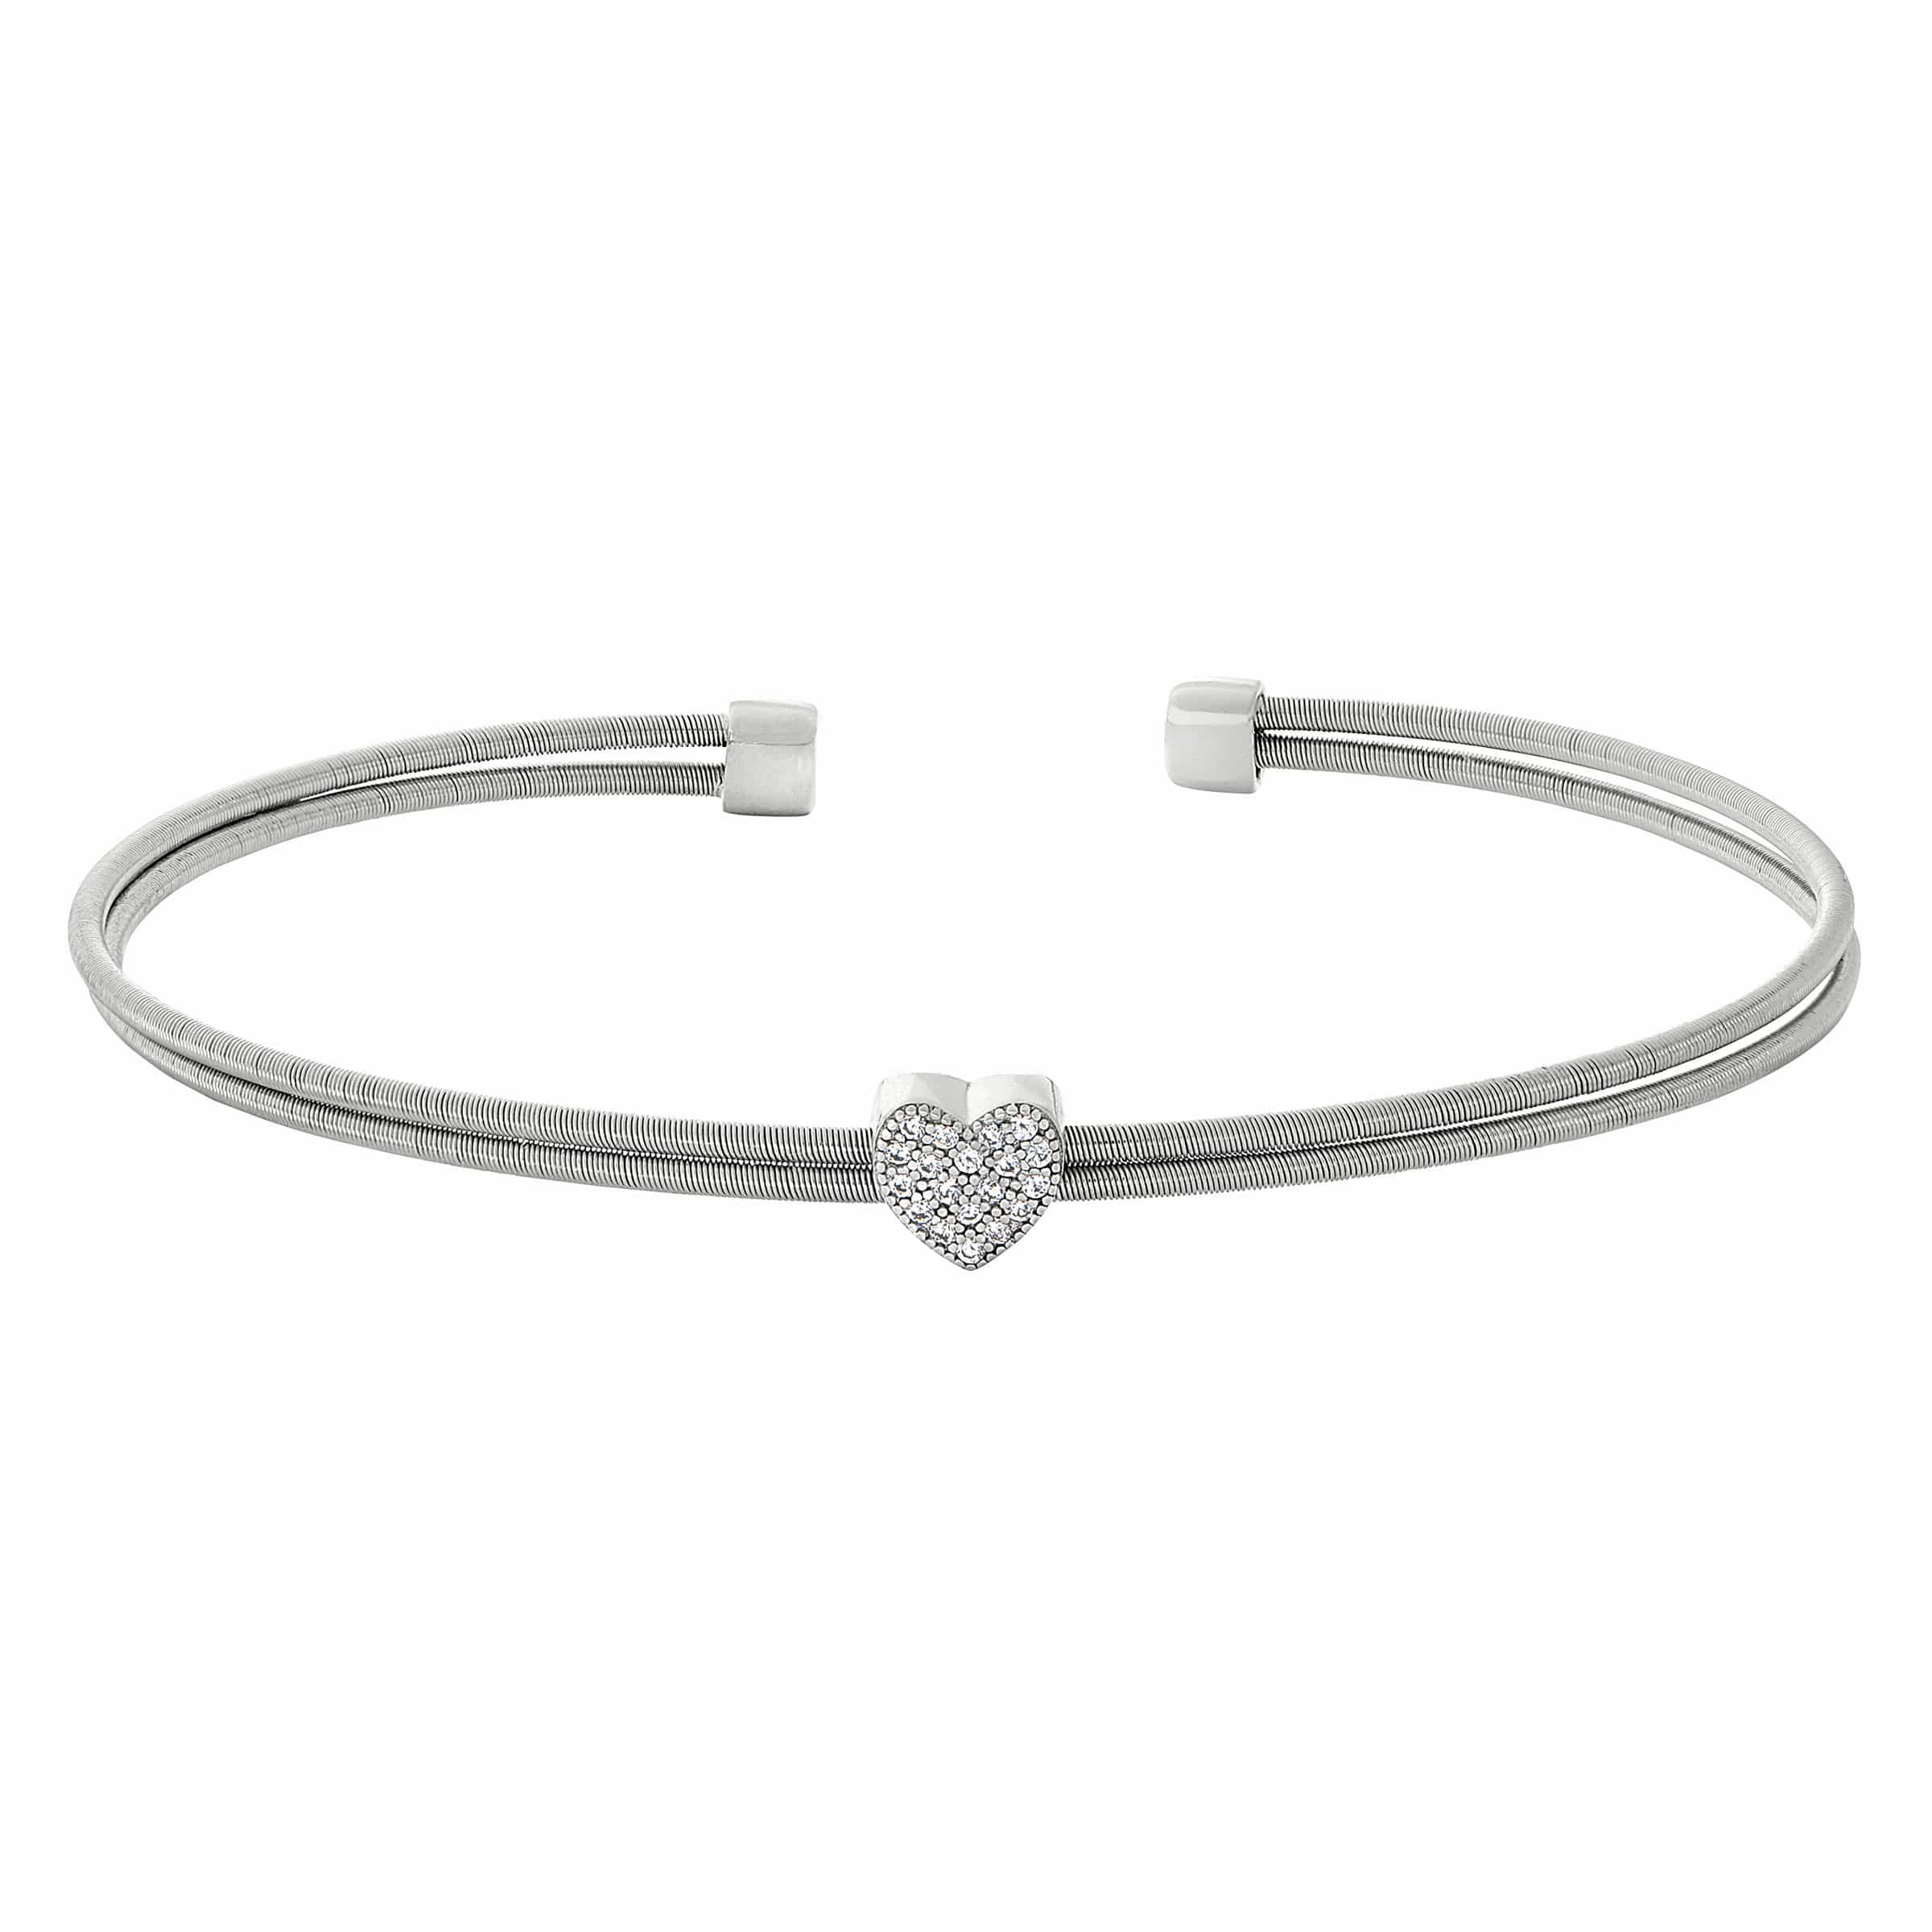 Rhodium Finish Sterling Silver Two Cable Cuff Bracelet - LL7061B-RH-Kelly Waters-Renee Taylor Gallery